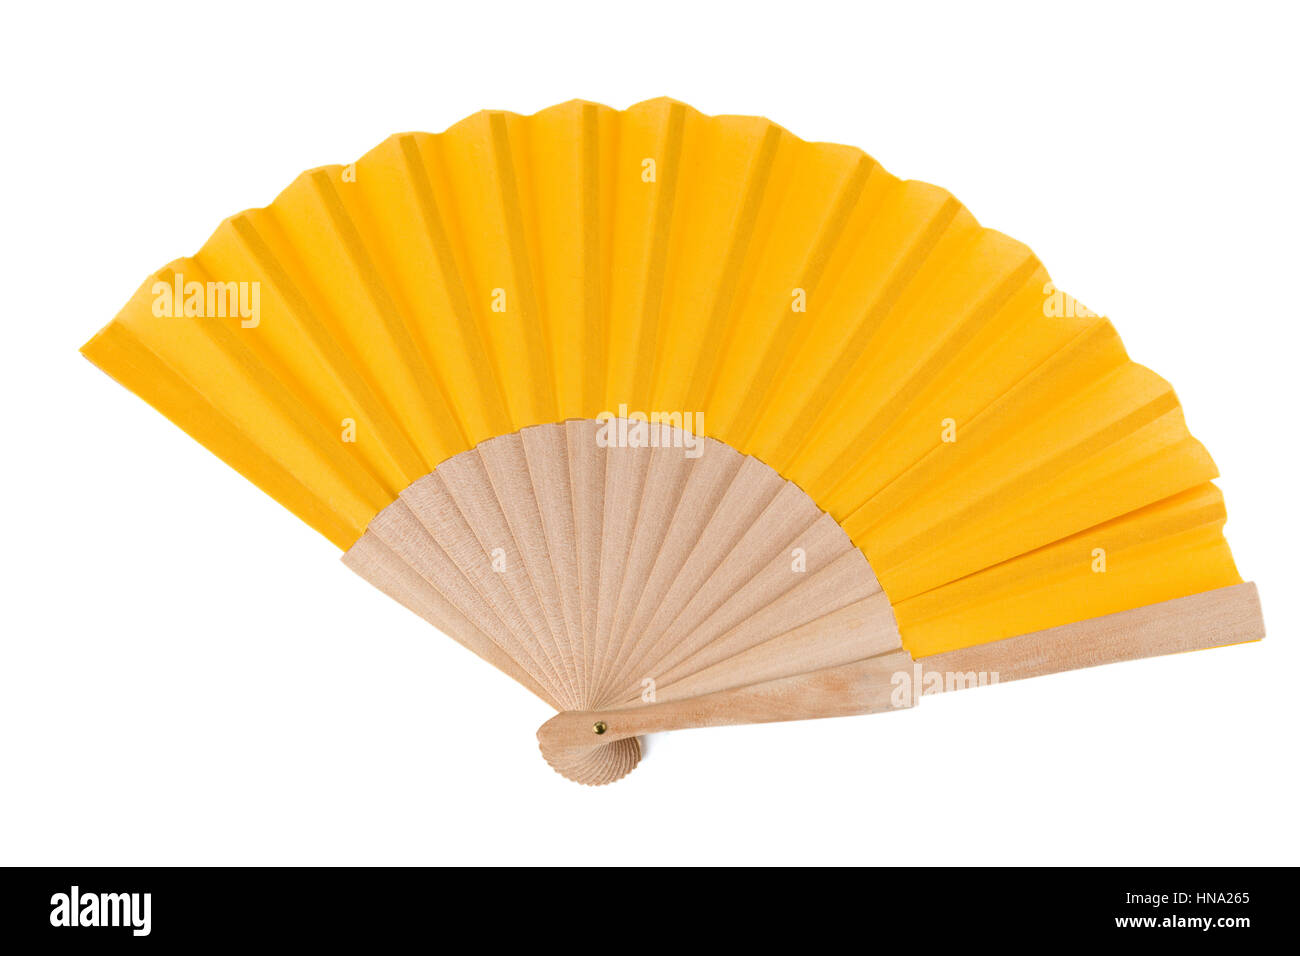 Yellow Open Hand Fan Isolated on a White Background. Top View. Studio shot. - Stock Image